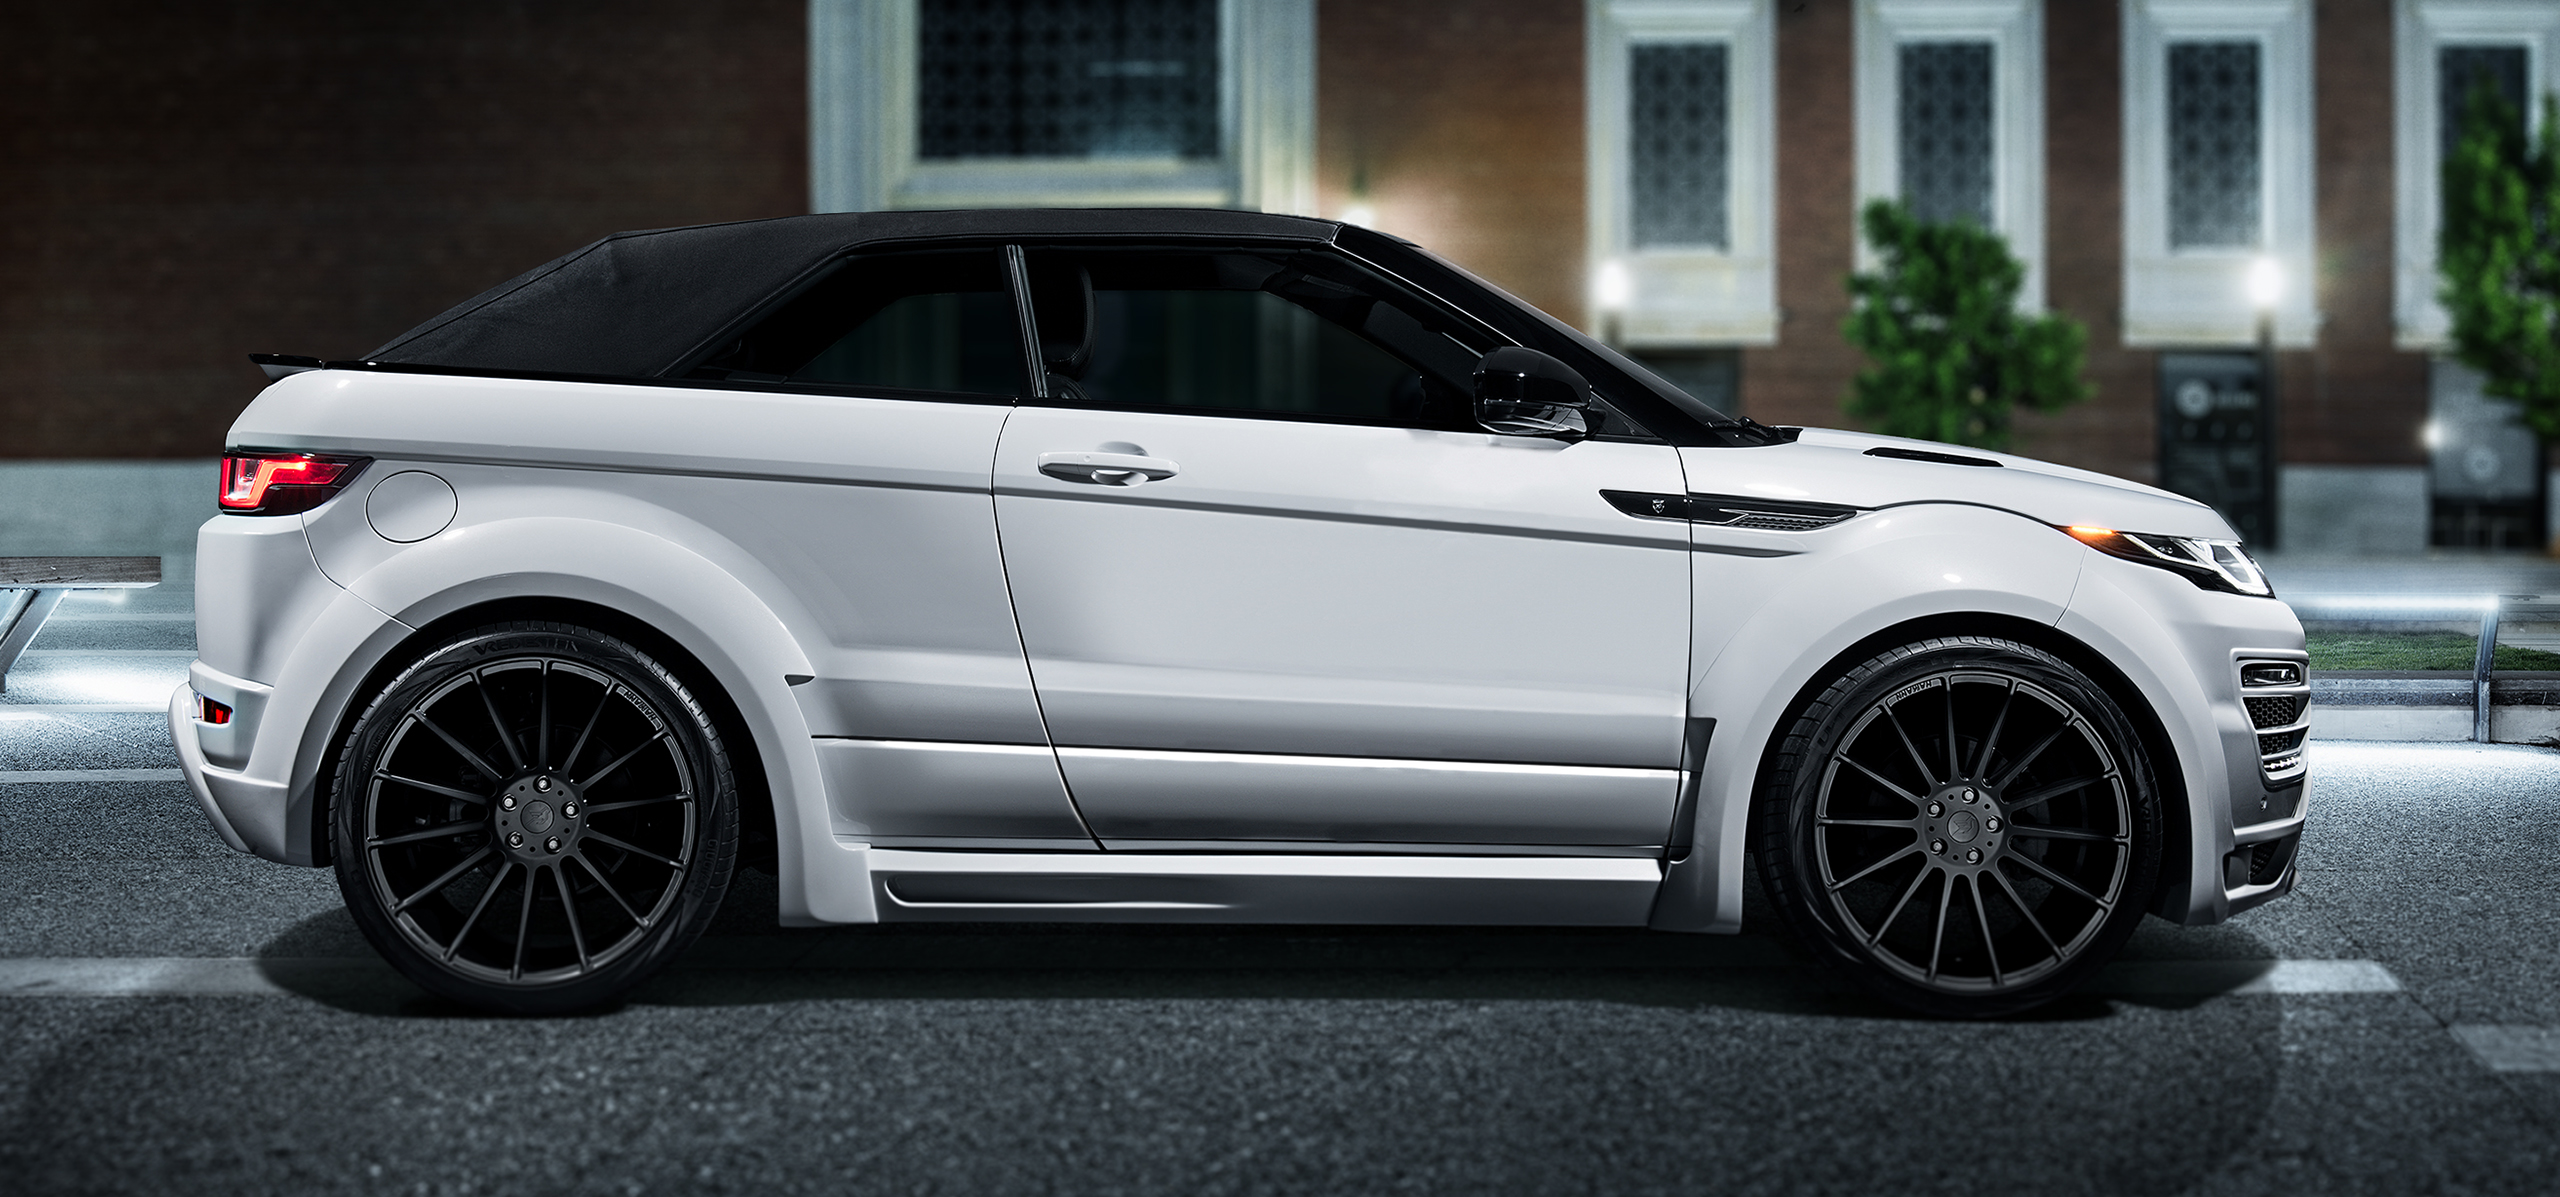 range rover evoque convertible hamann motorsport uk. Black Bedroom Furniture Sets. Home Design Ideas